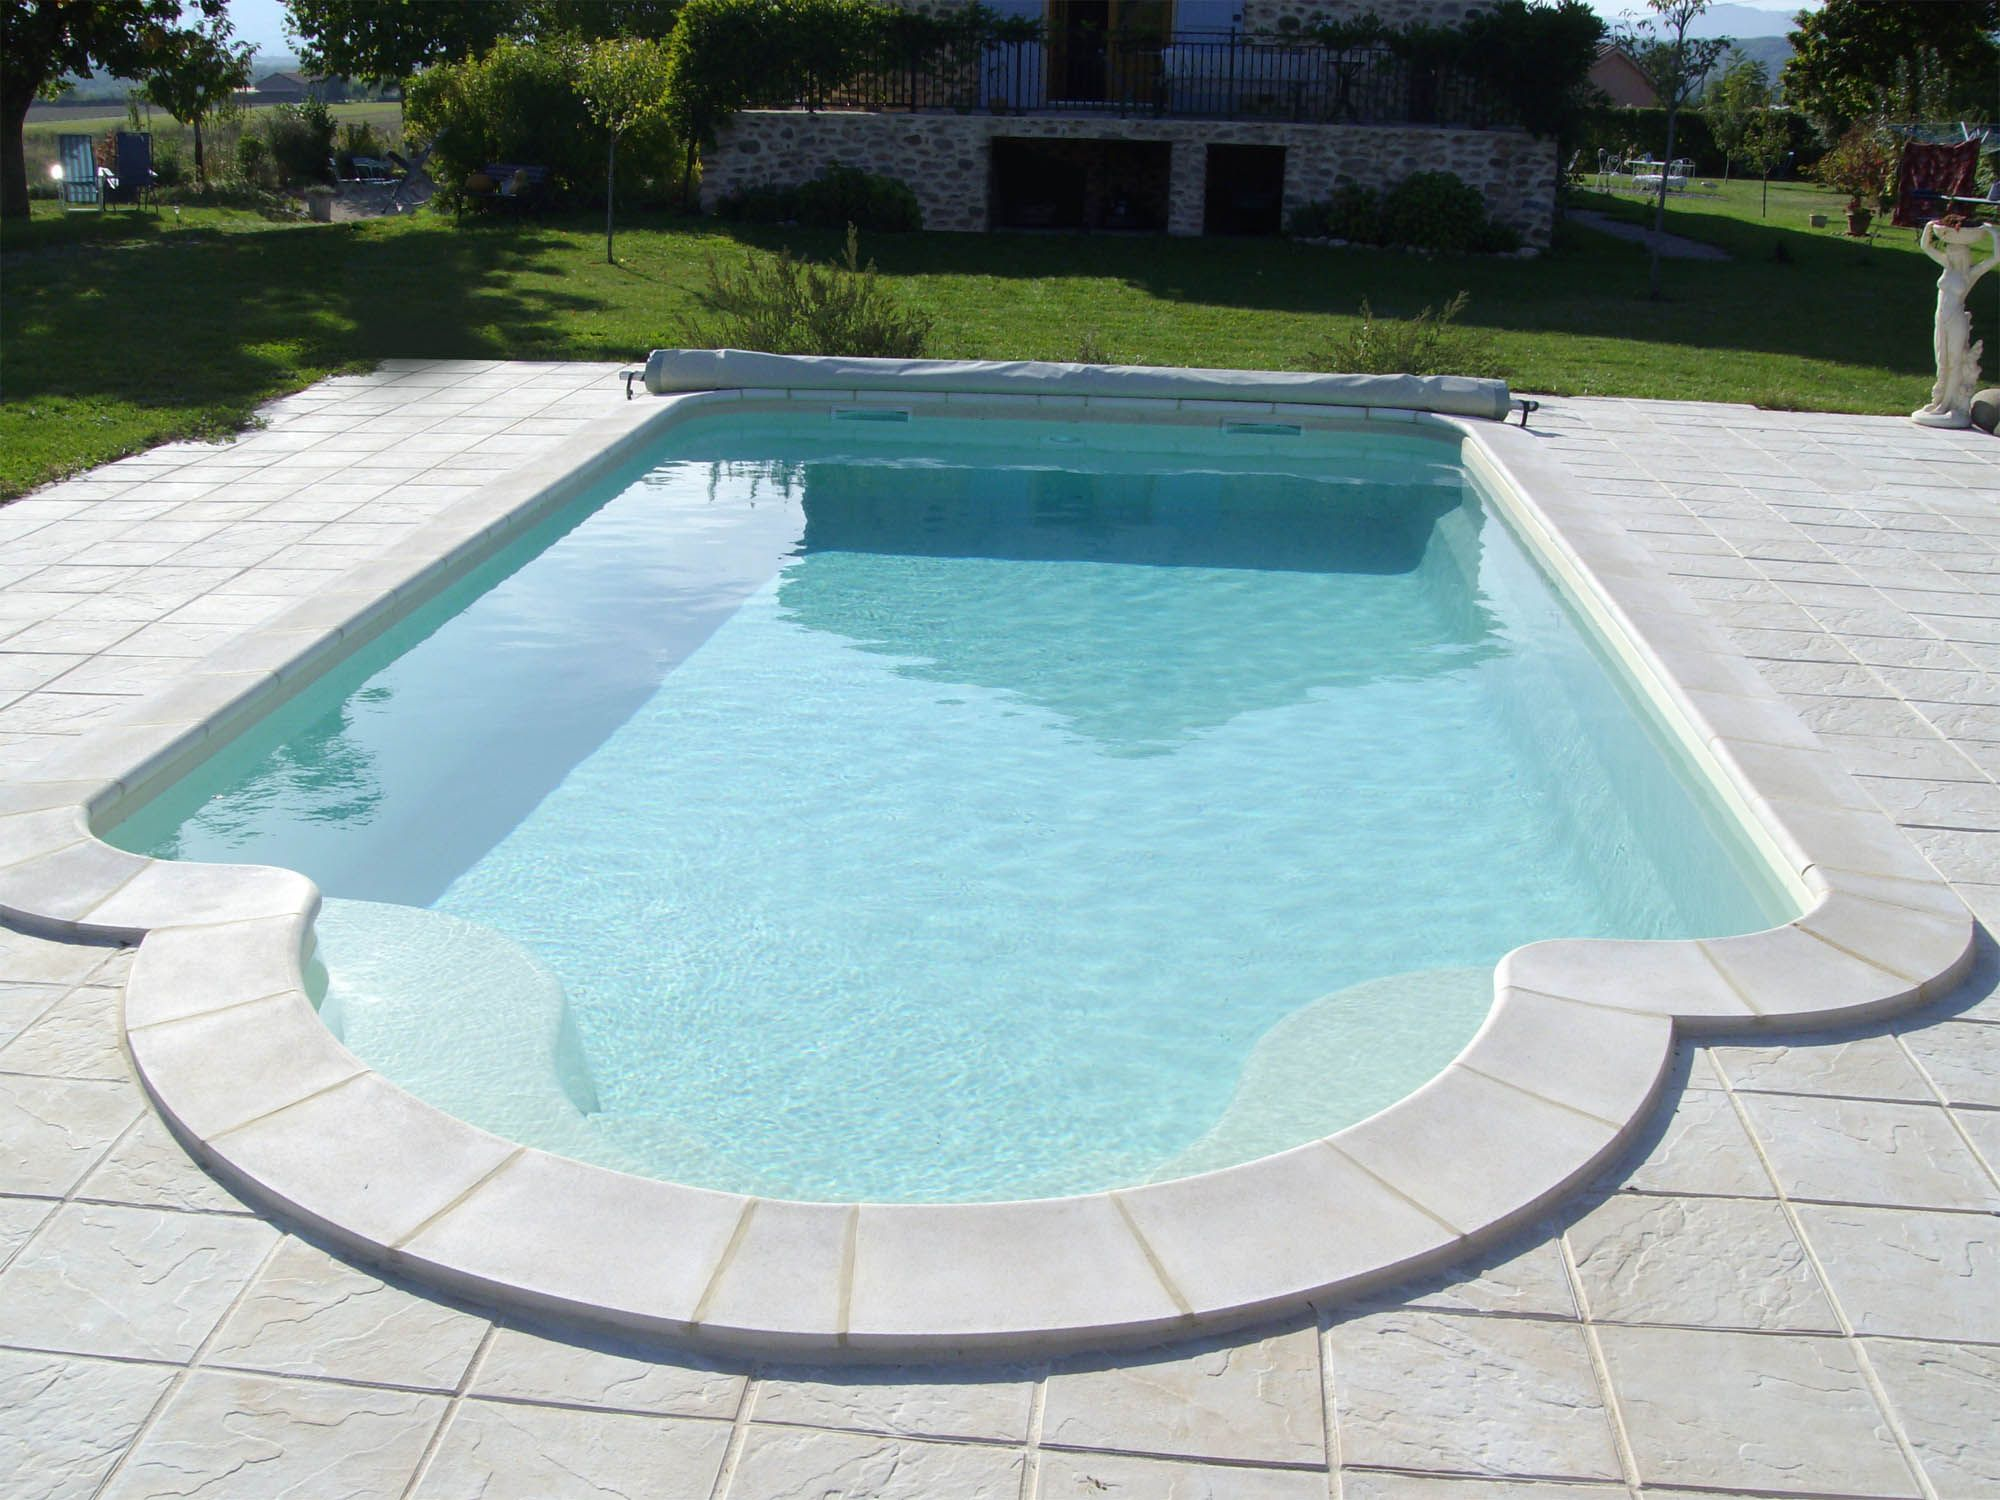 Piscine coque polyester variation fabrication fran aise for Liner piscine couleur sable